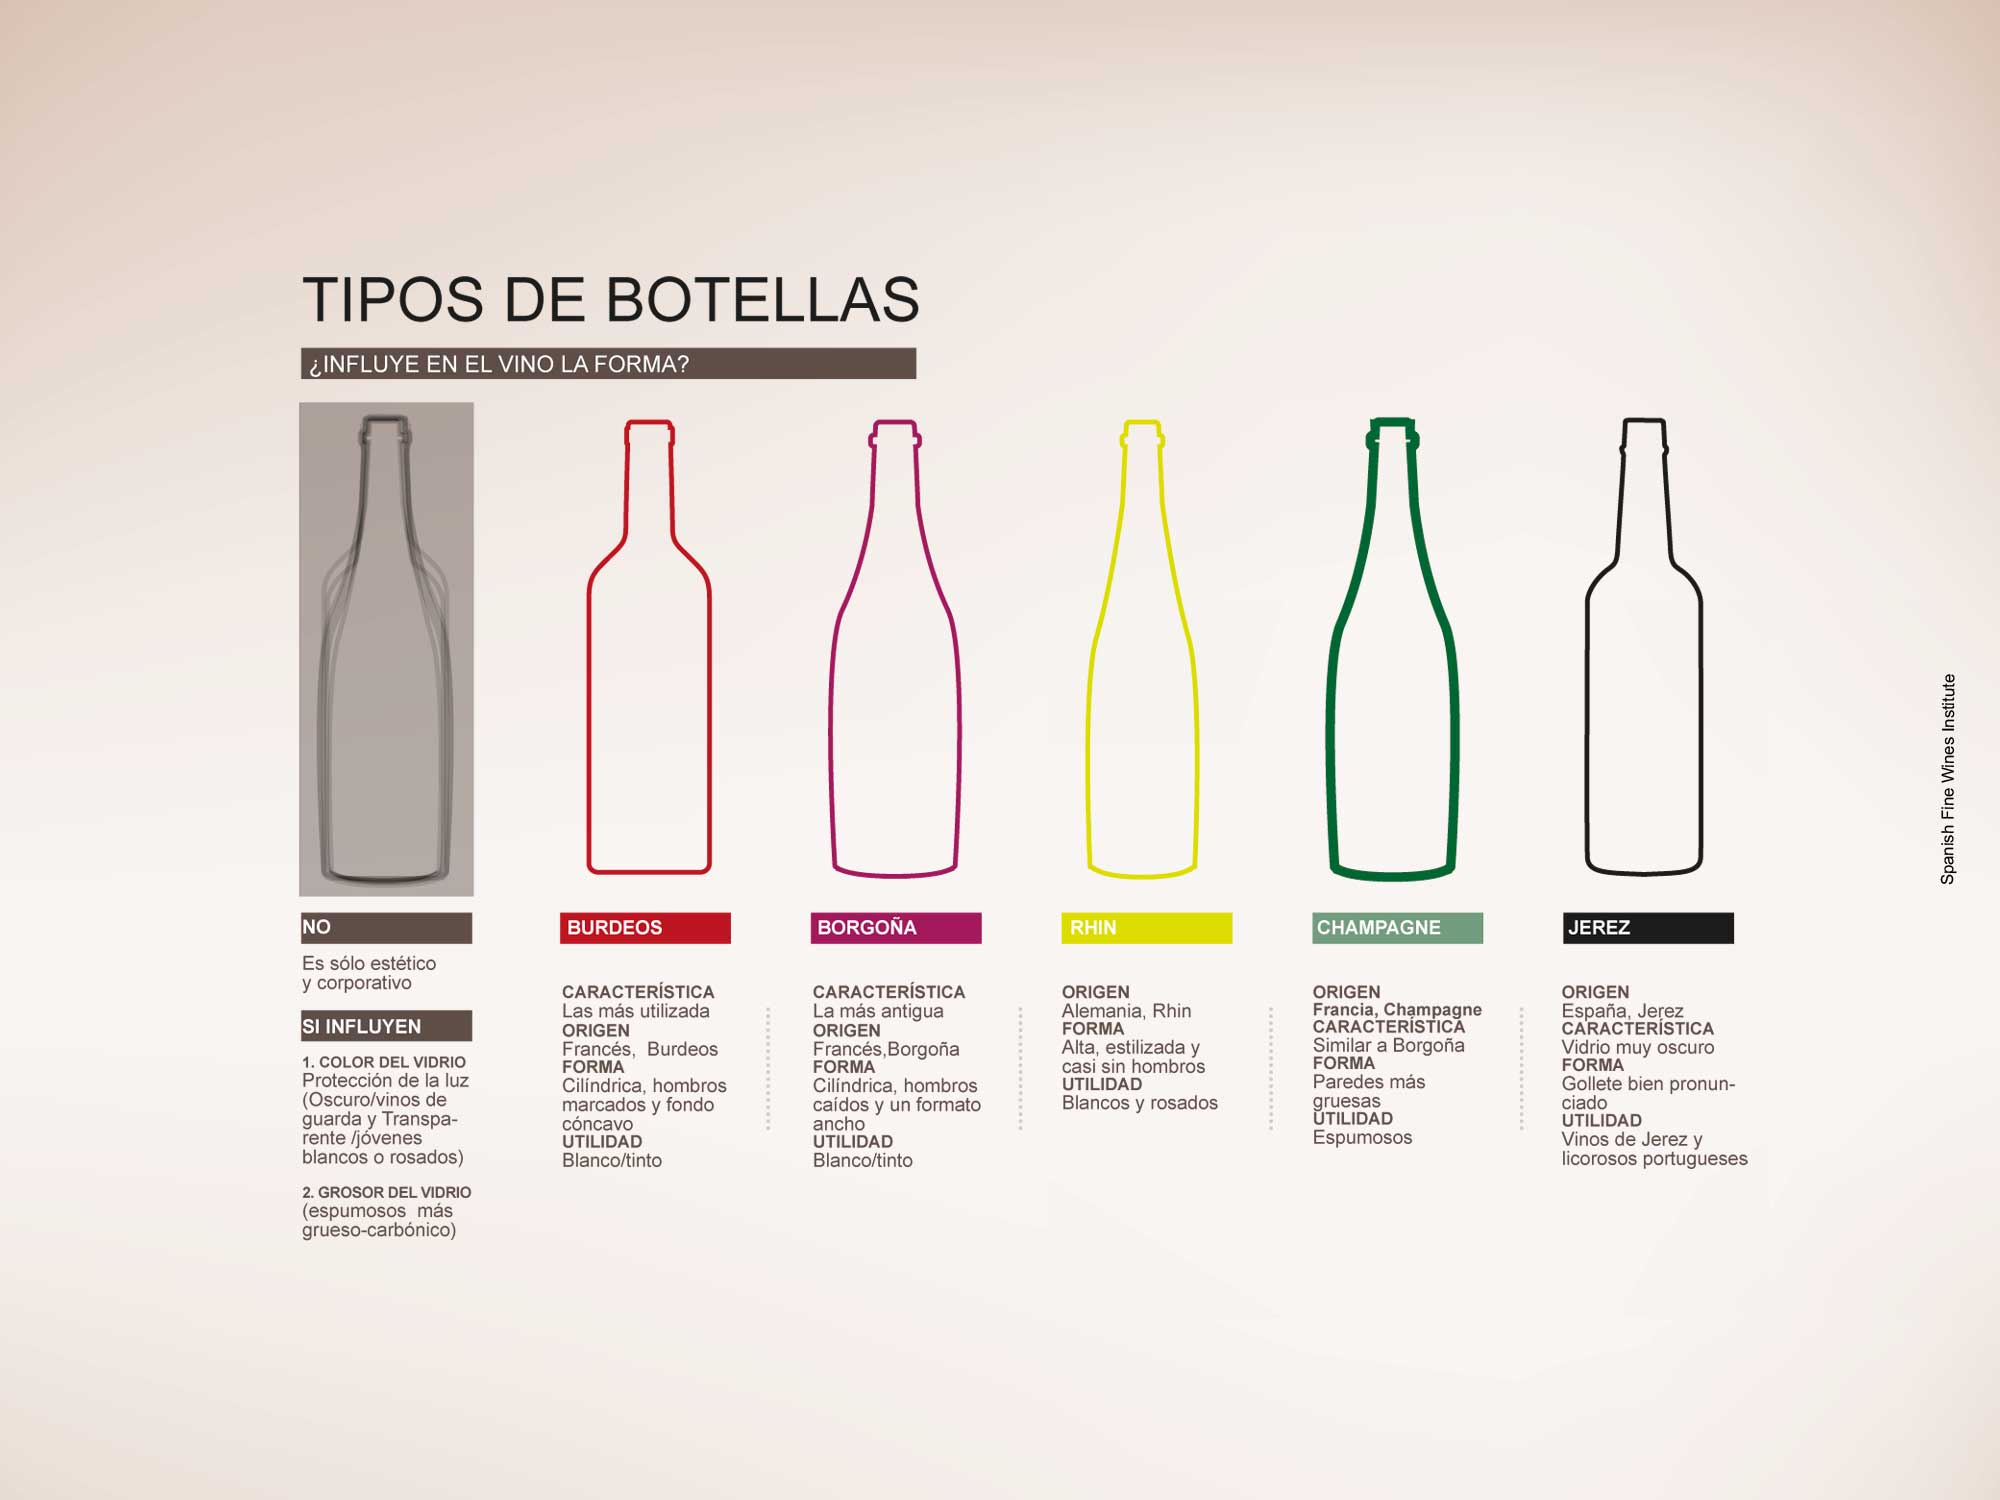 TYPES OF BOTTLES: MARKING THE DIFFERENCE